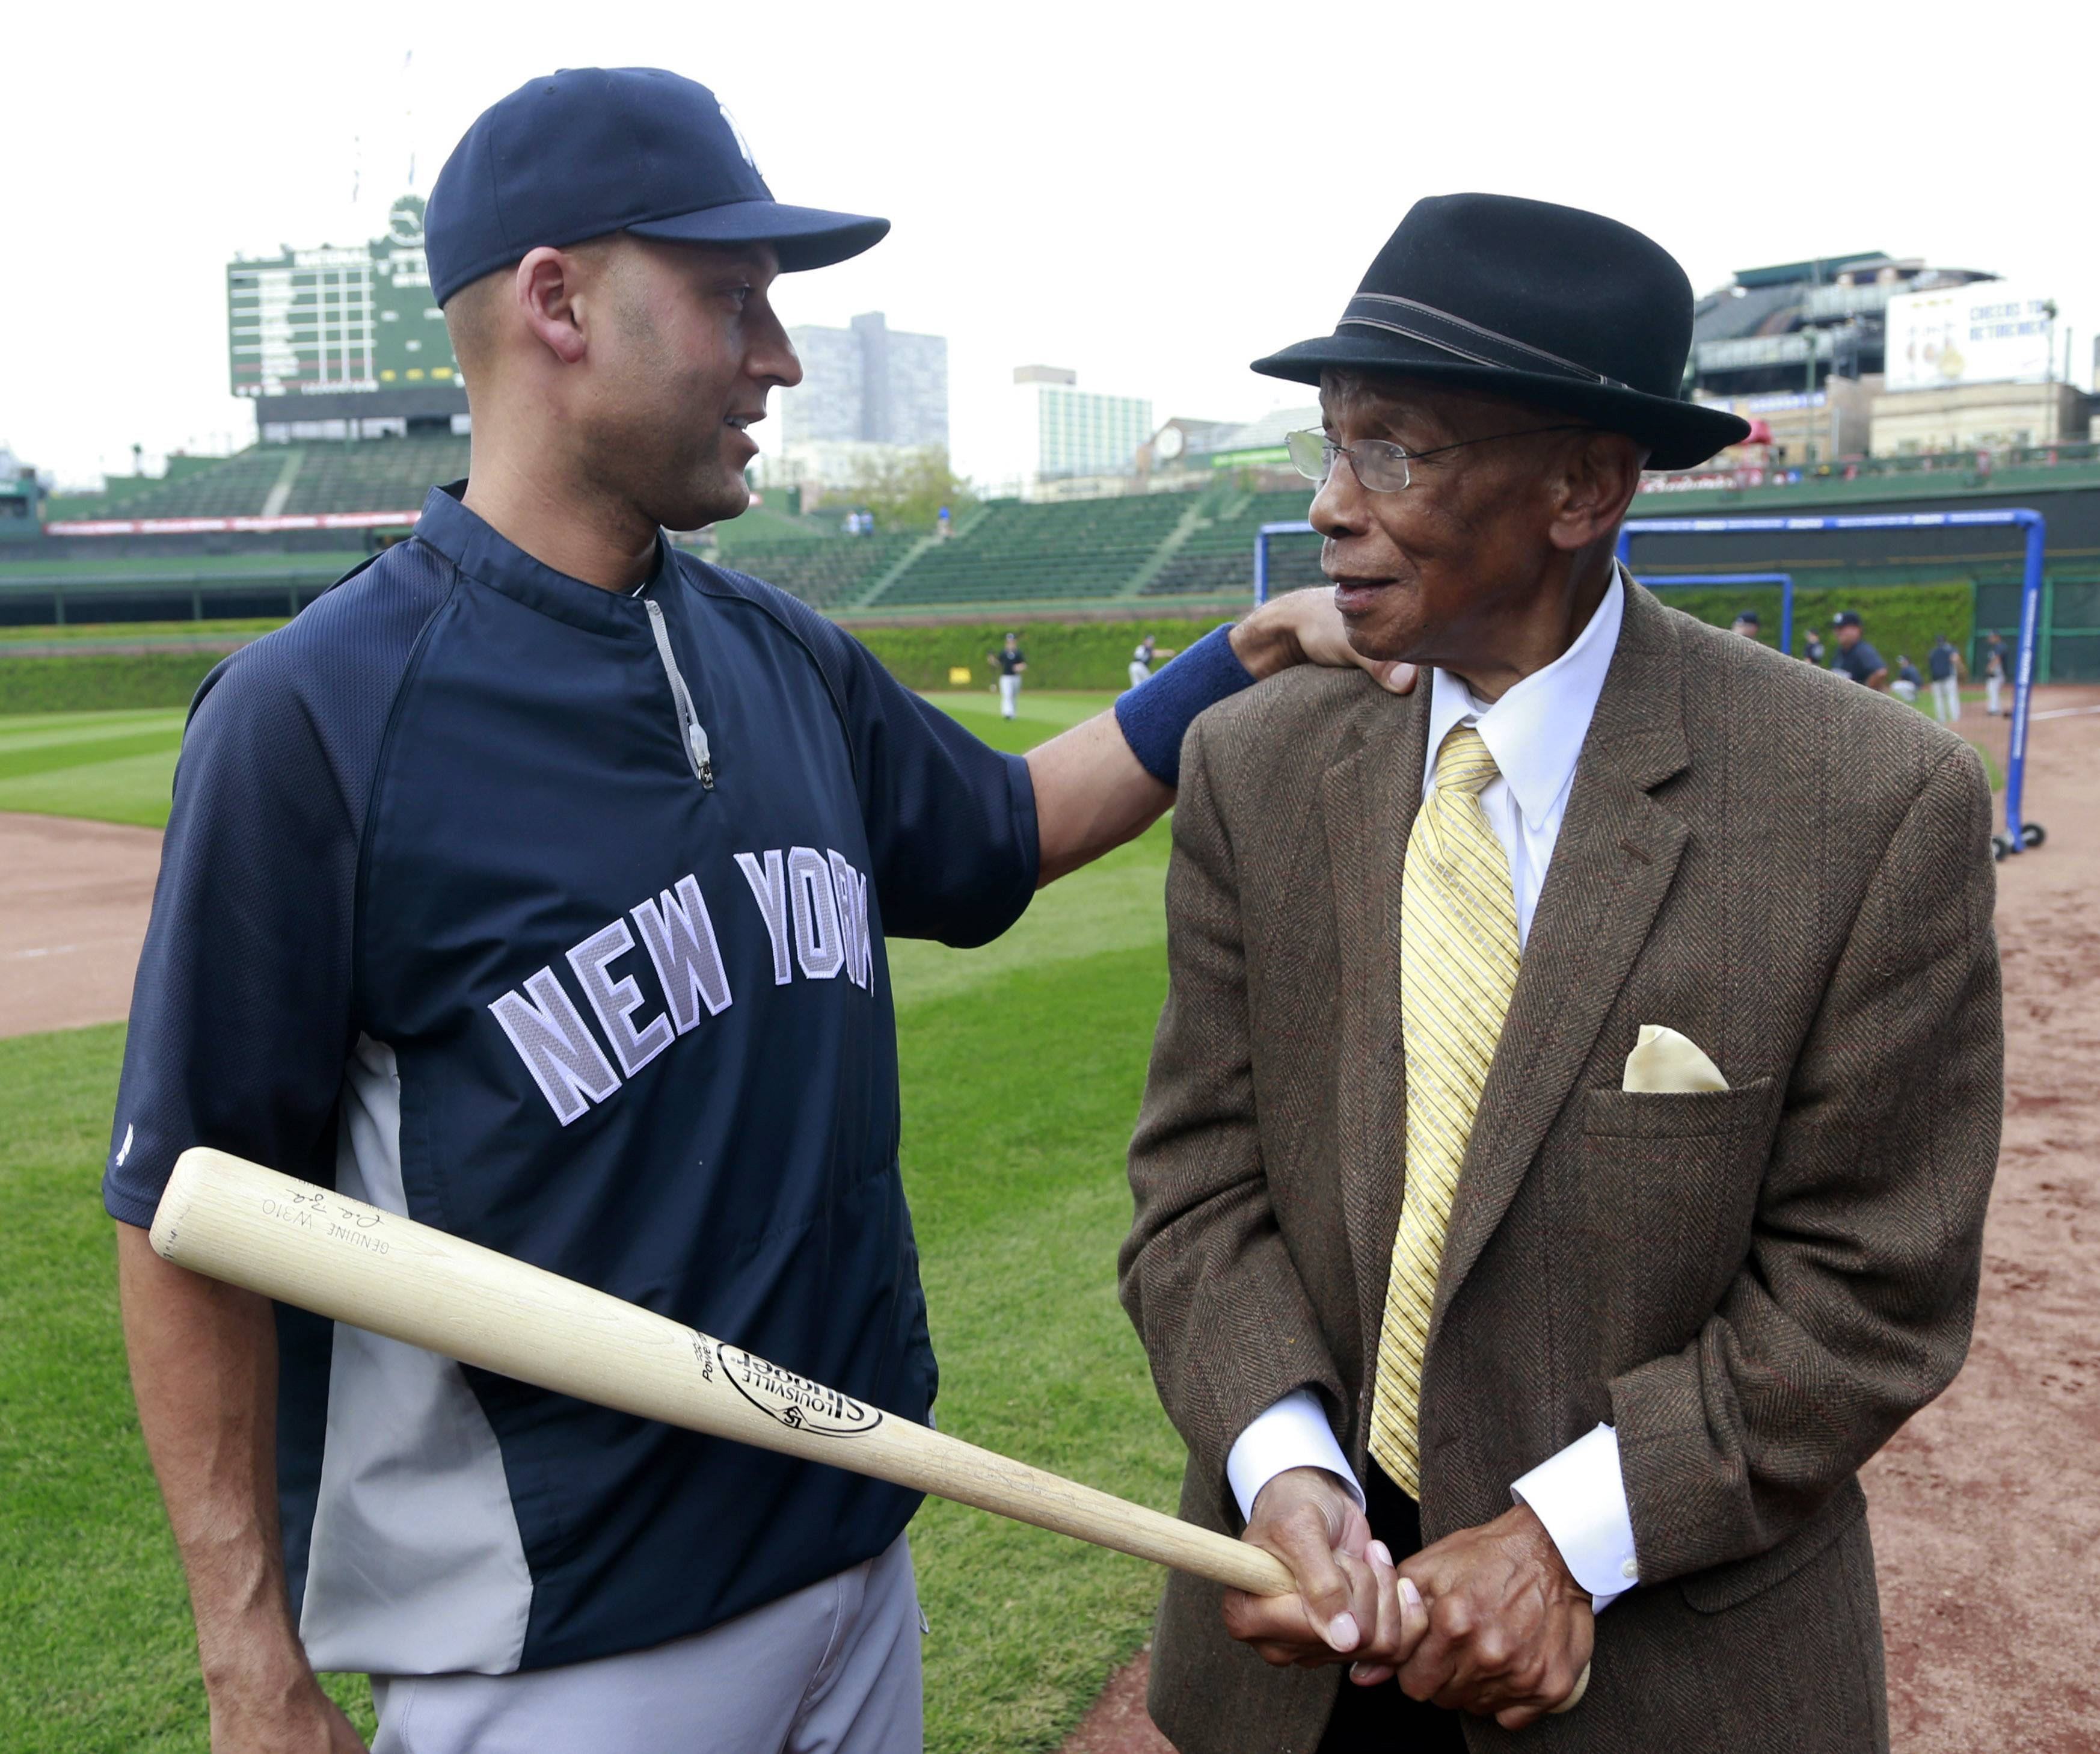 Yankees shortstop Derek Jeter, left, talks with Cubs Hall of Famer Ernie Banks before Tuesday night's game at Wrigley Field.